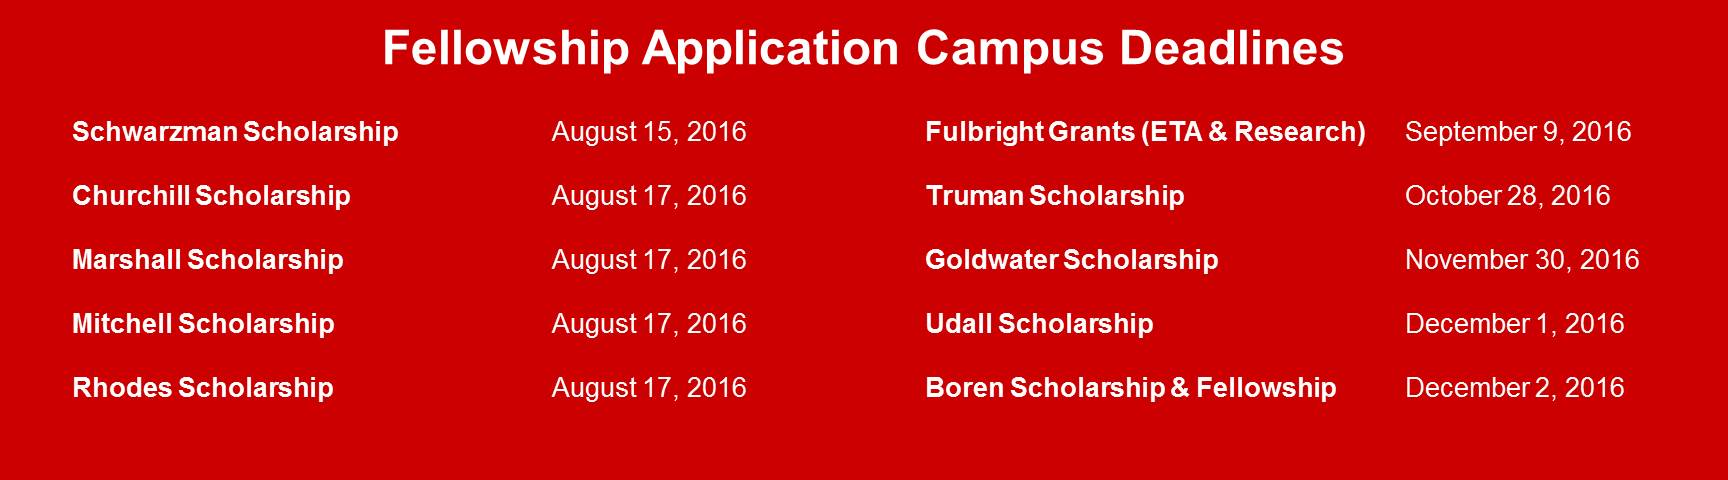 fellowships deadlines